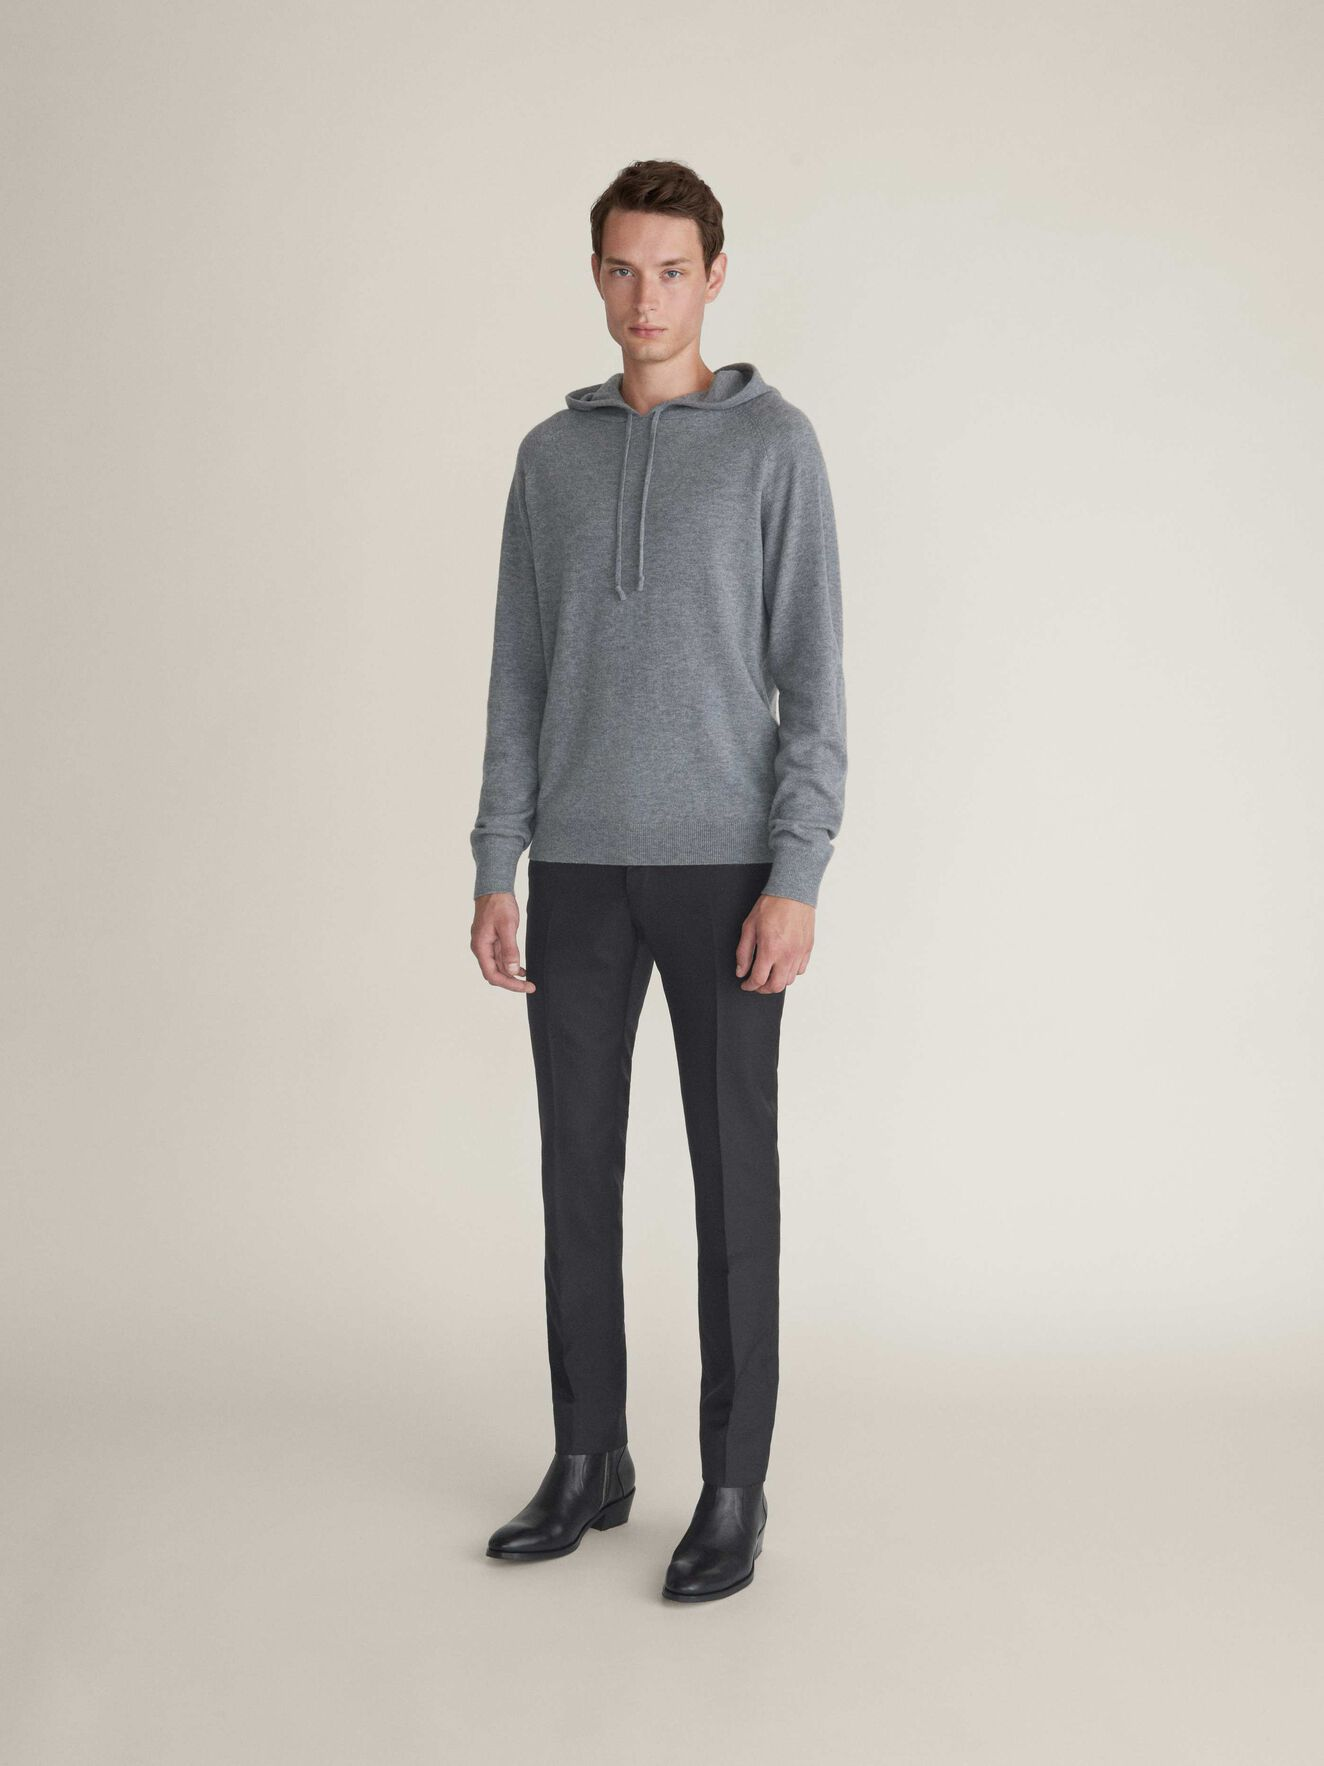 Nakkne Pullover in Light grey melange from Tiger of Sweden